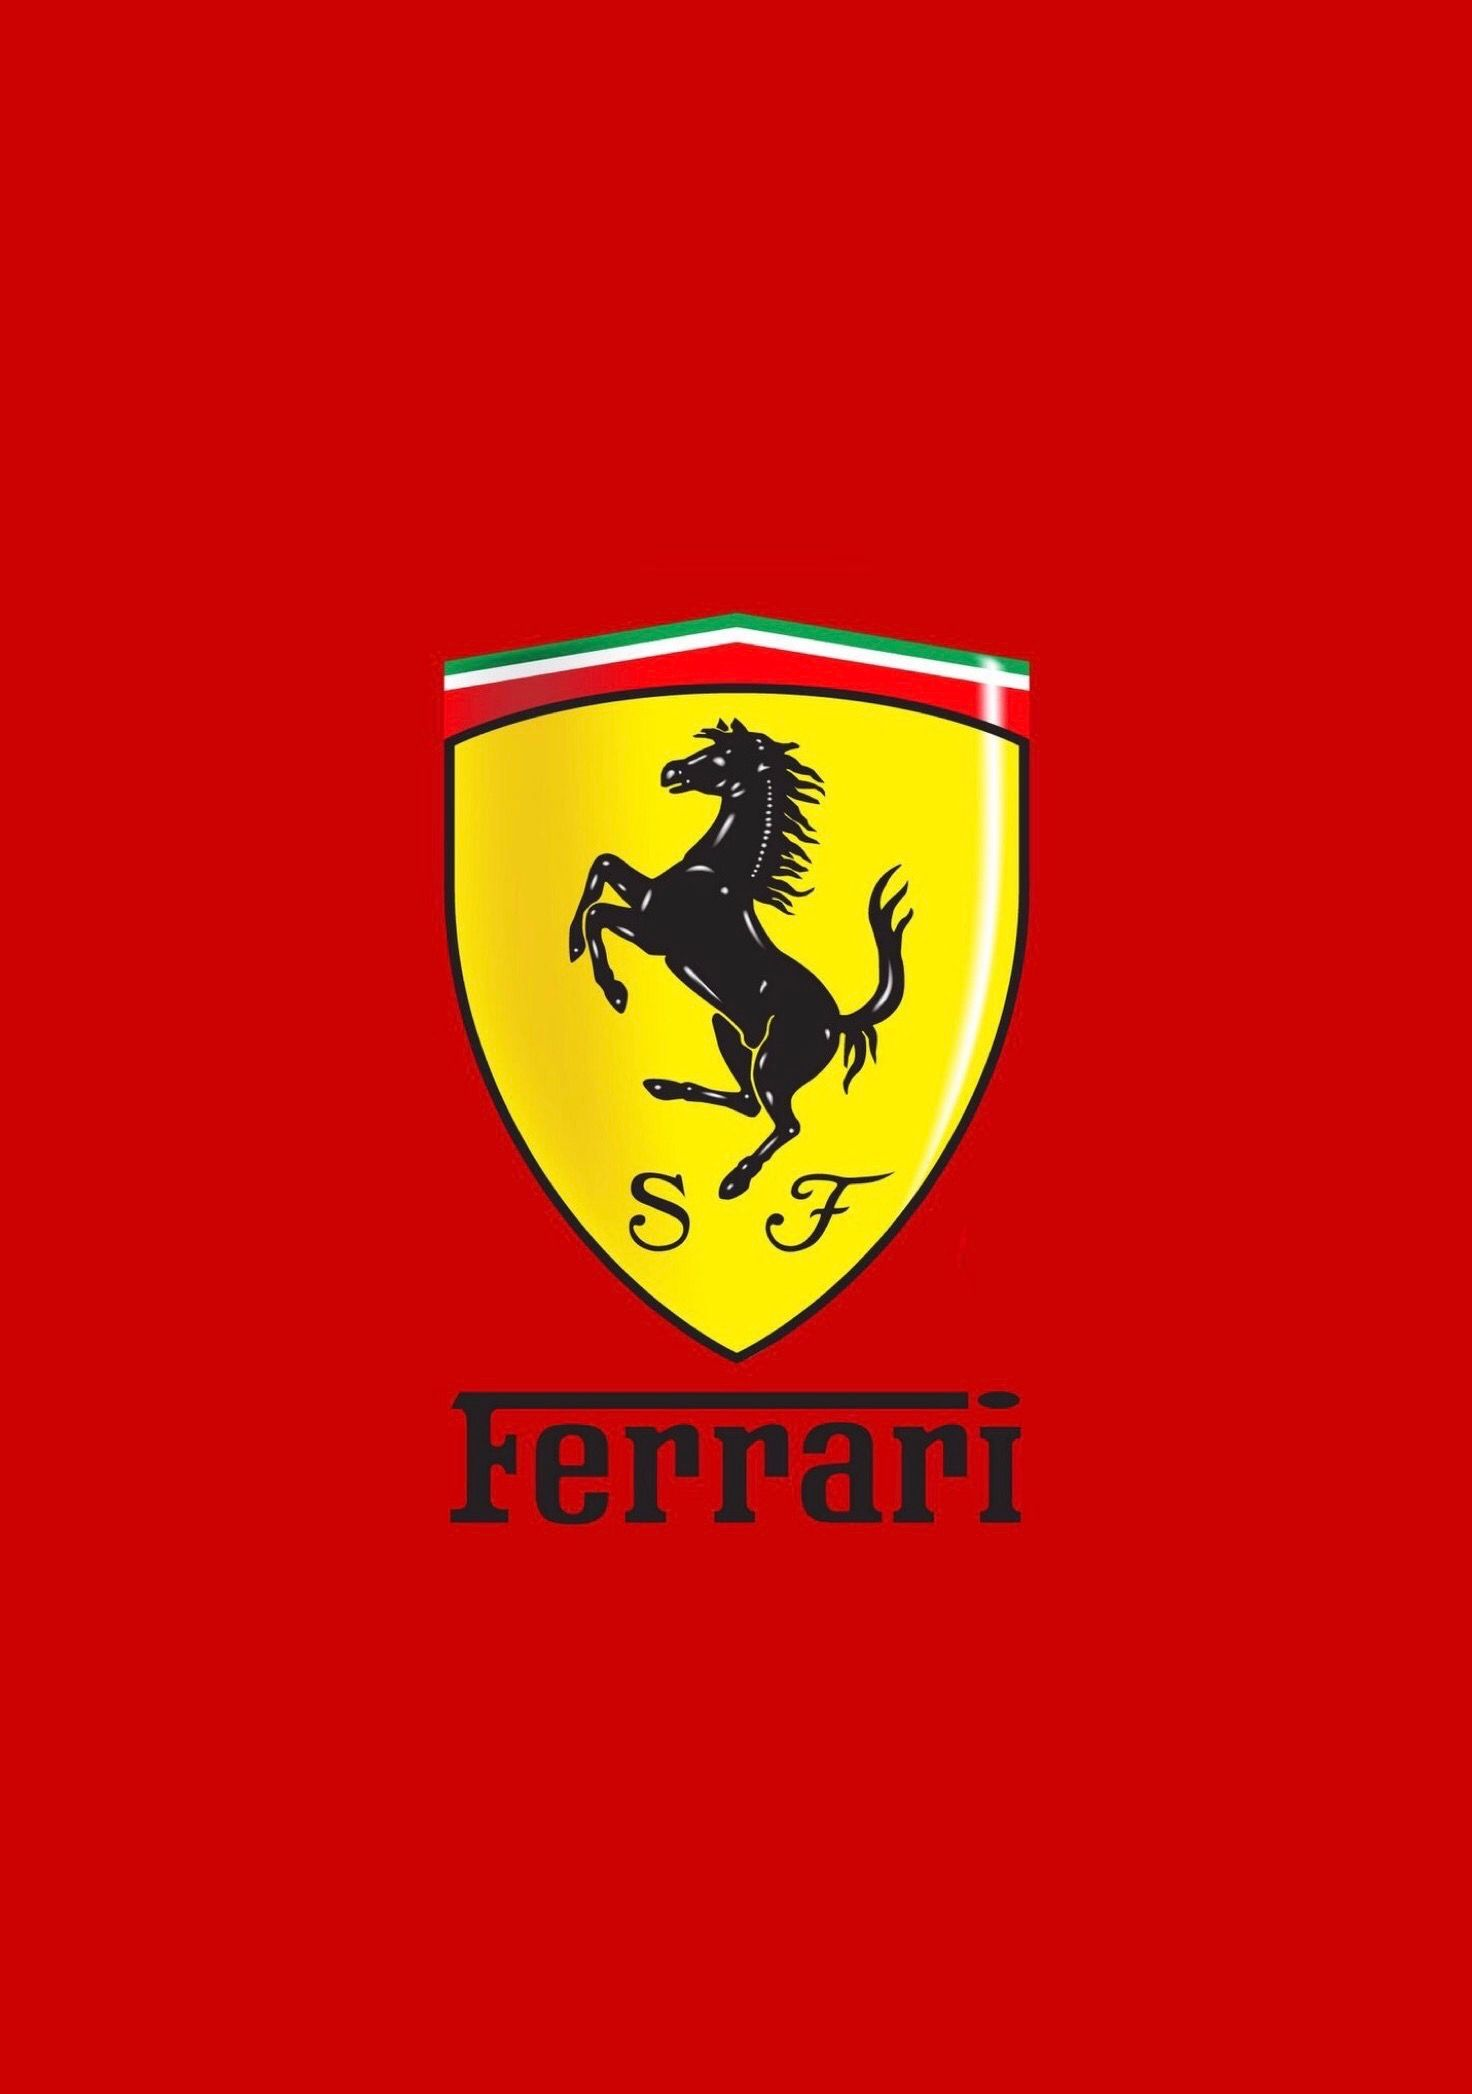 Ferrari logo wallpaper wallpaper pinterest ferrari logos and ferrari logo wallpaper buycottarizona Choice Image